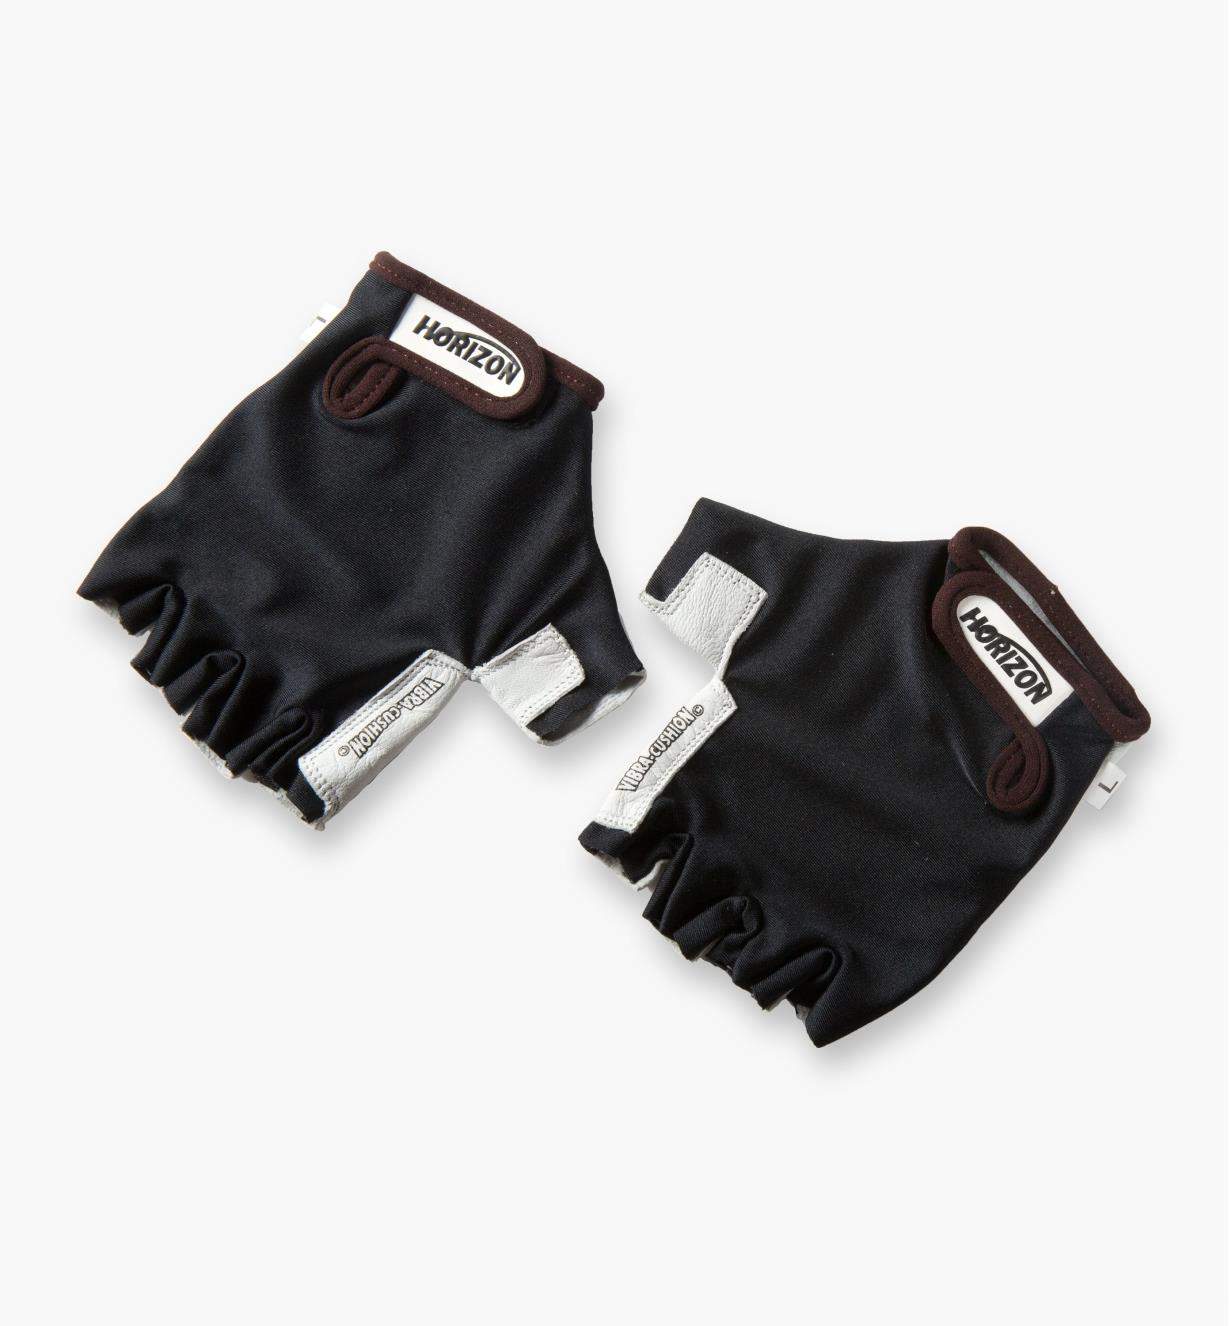 67K8625 - Pr. Anti-Vibration Gloves, Large